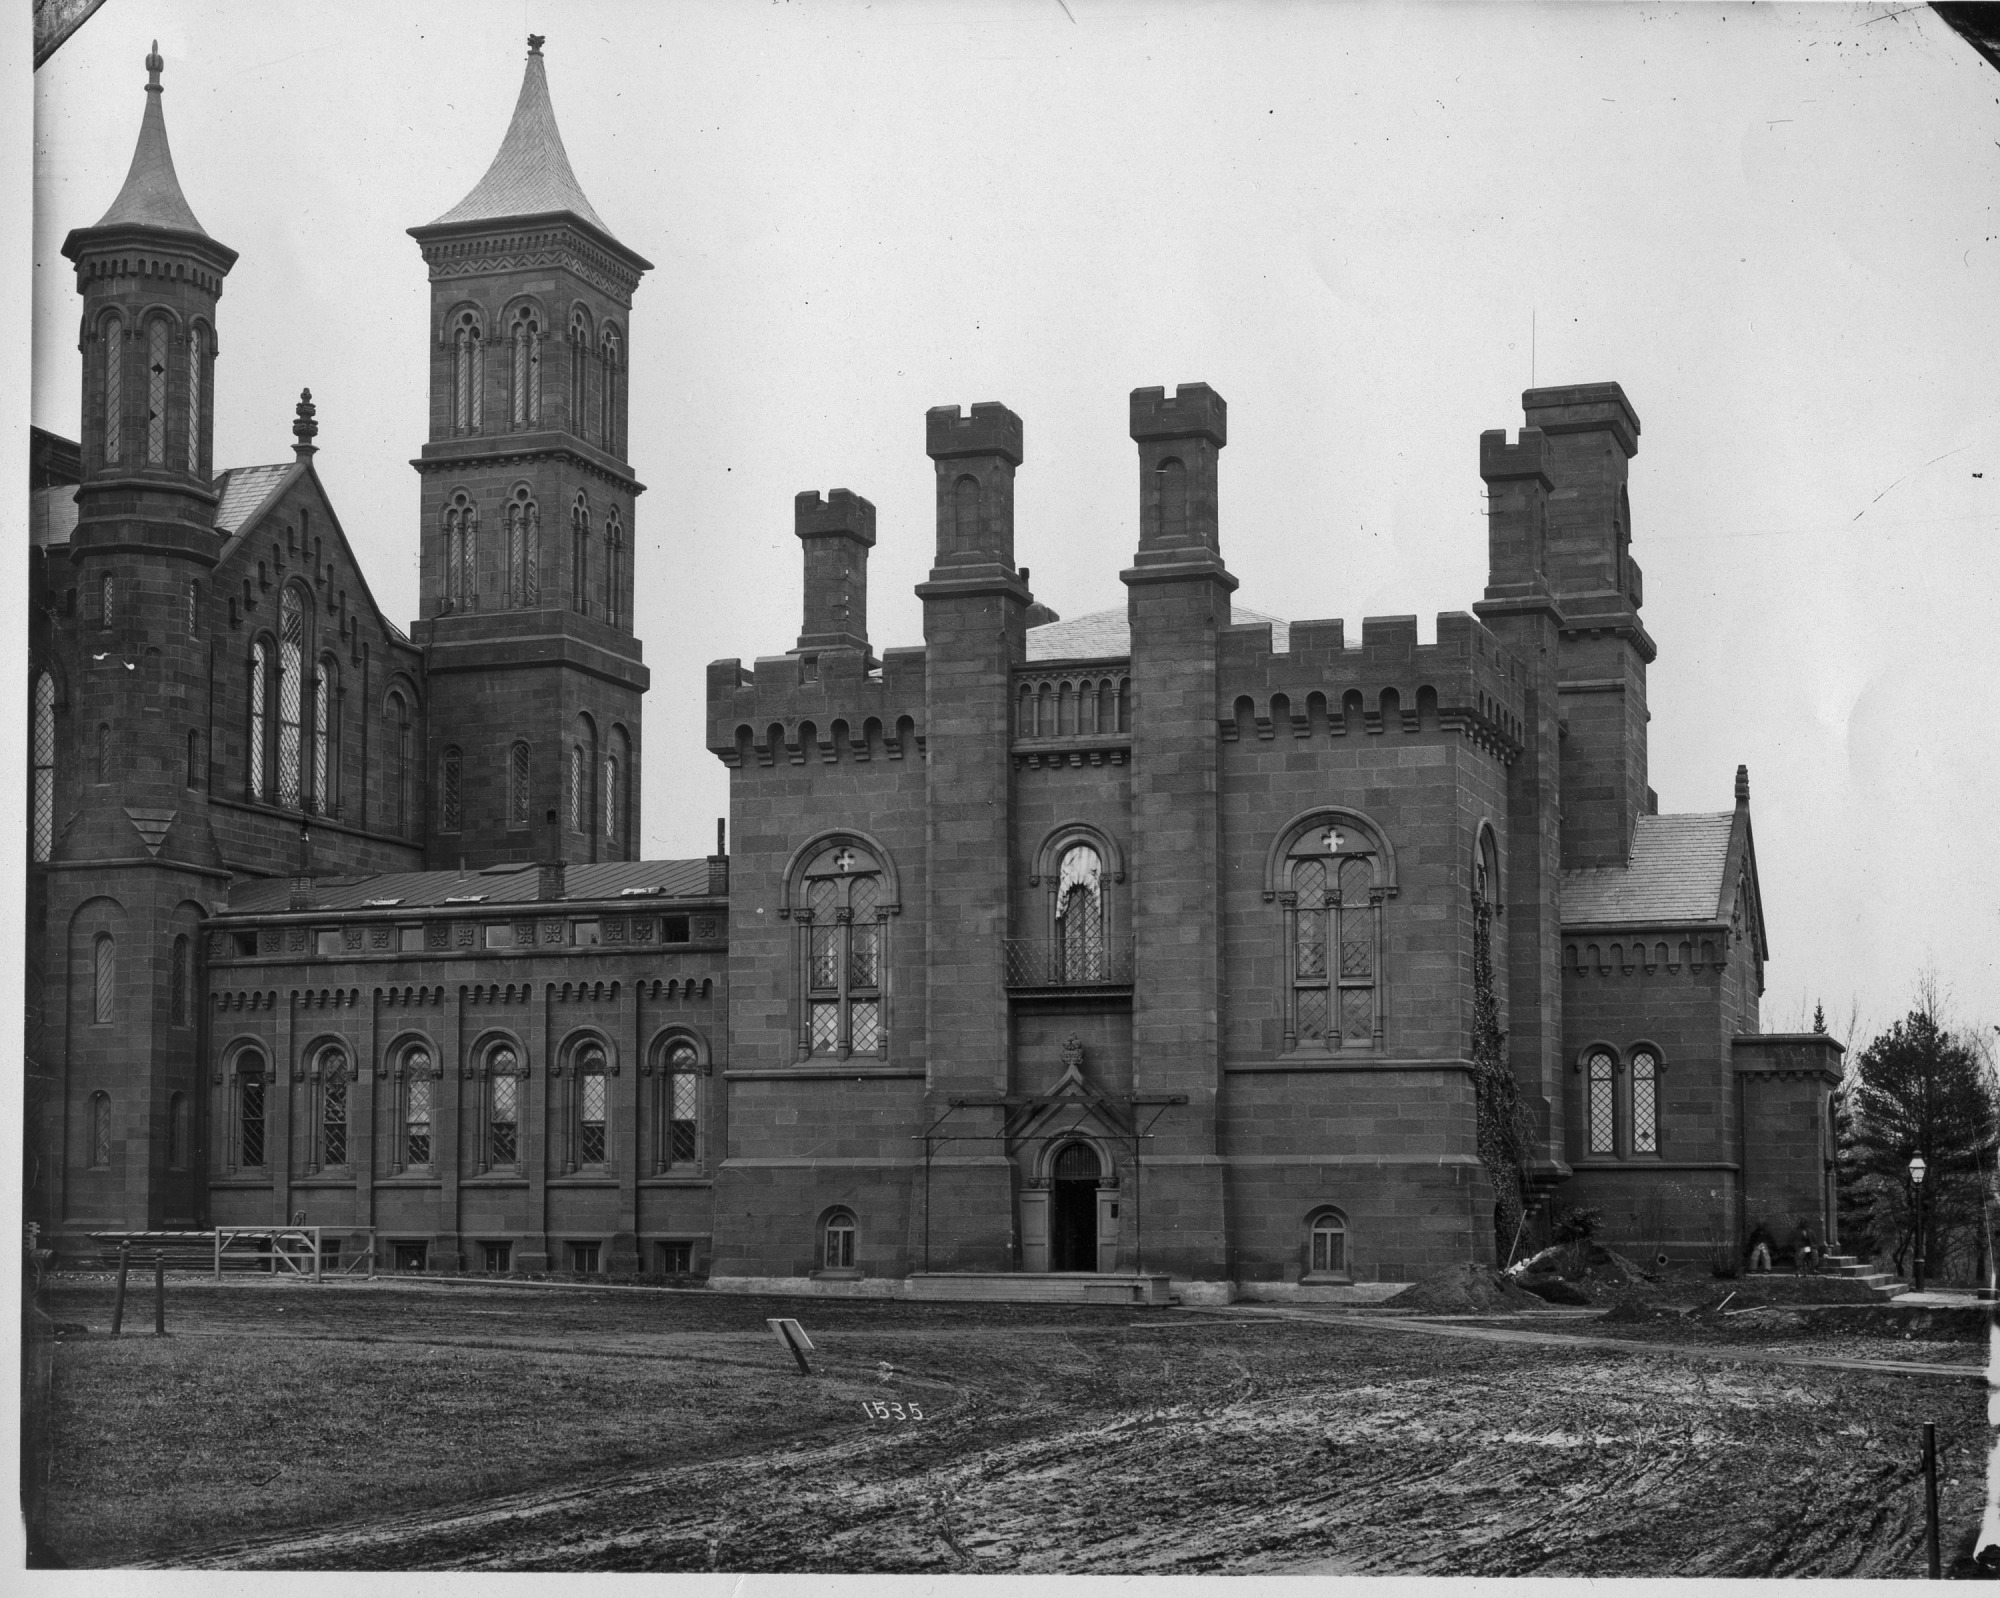 Exterior View of Castle, 1883